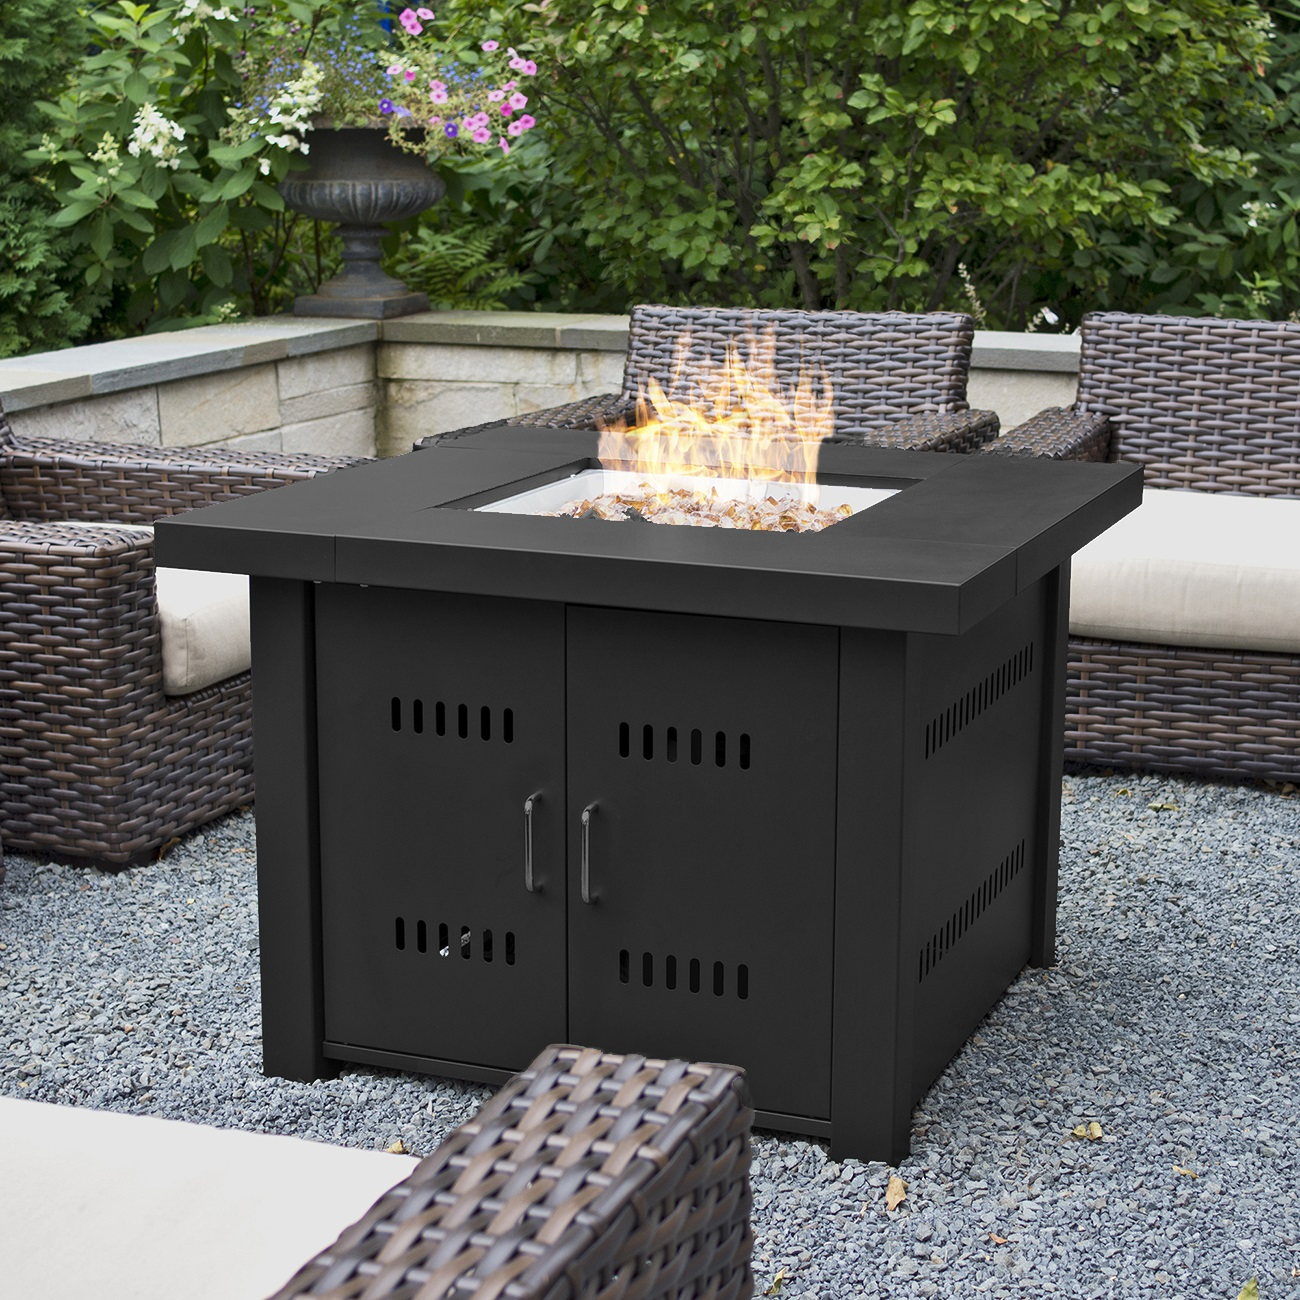 NEW Outdoor Fire Pit Square Table Firepit Propane